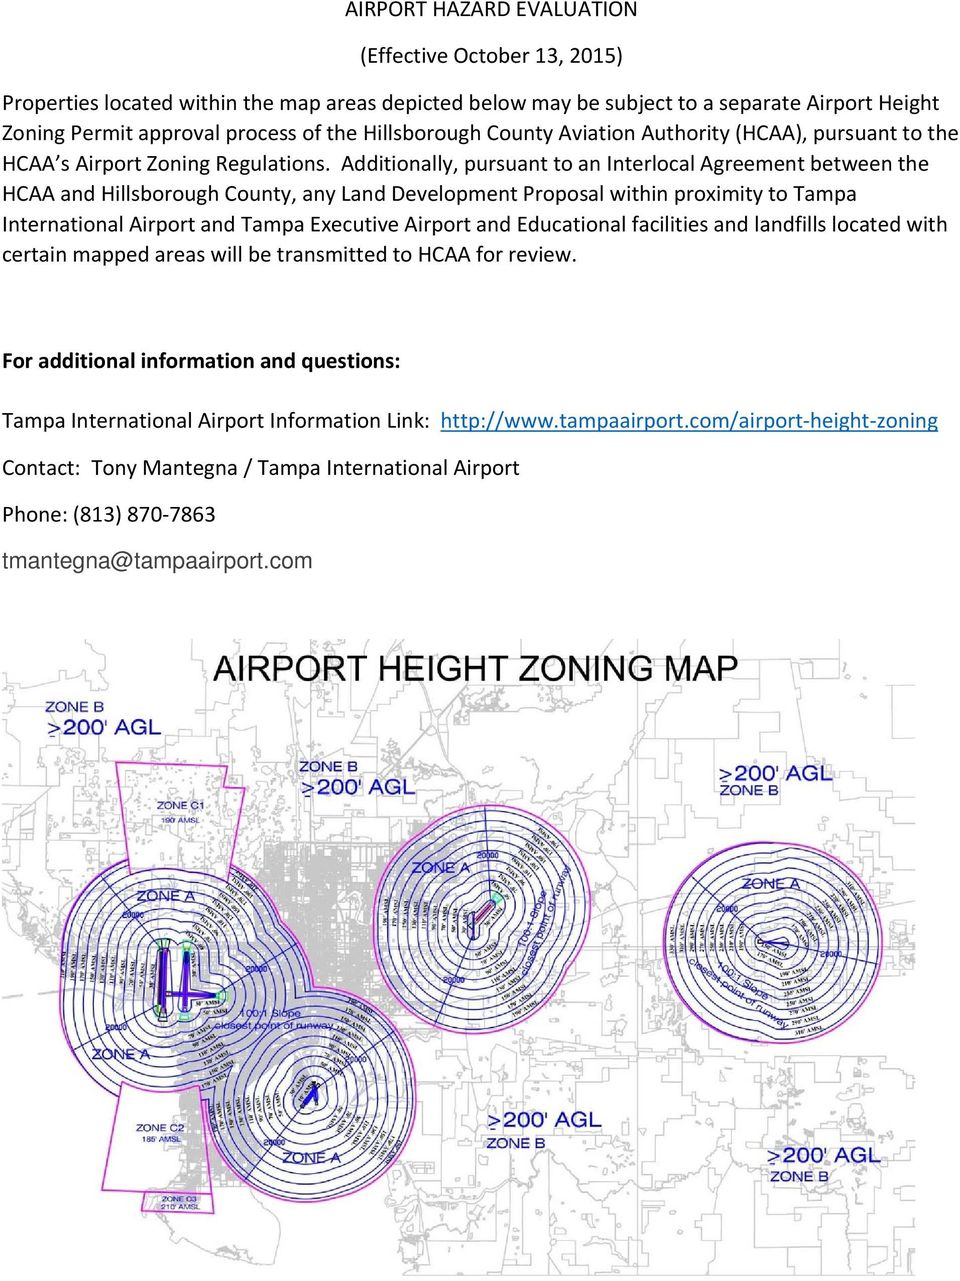 Additionally, pursuant to an Interlocal Agreement between the HCAA and Hillsborough County, any Land Development Proposal within proximity to Tampa International Airport and Tampa Executive Airport